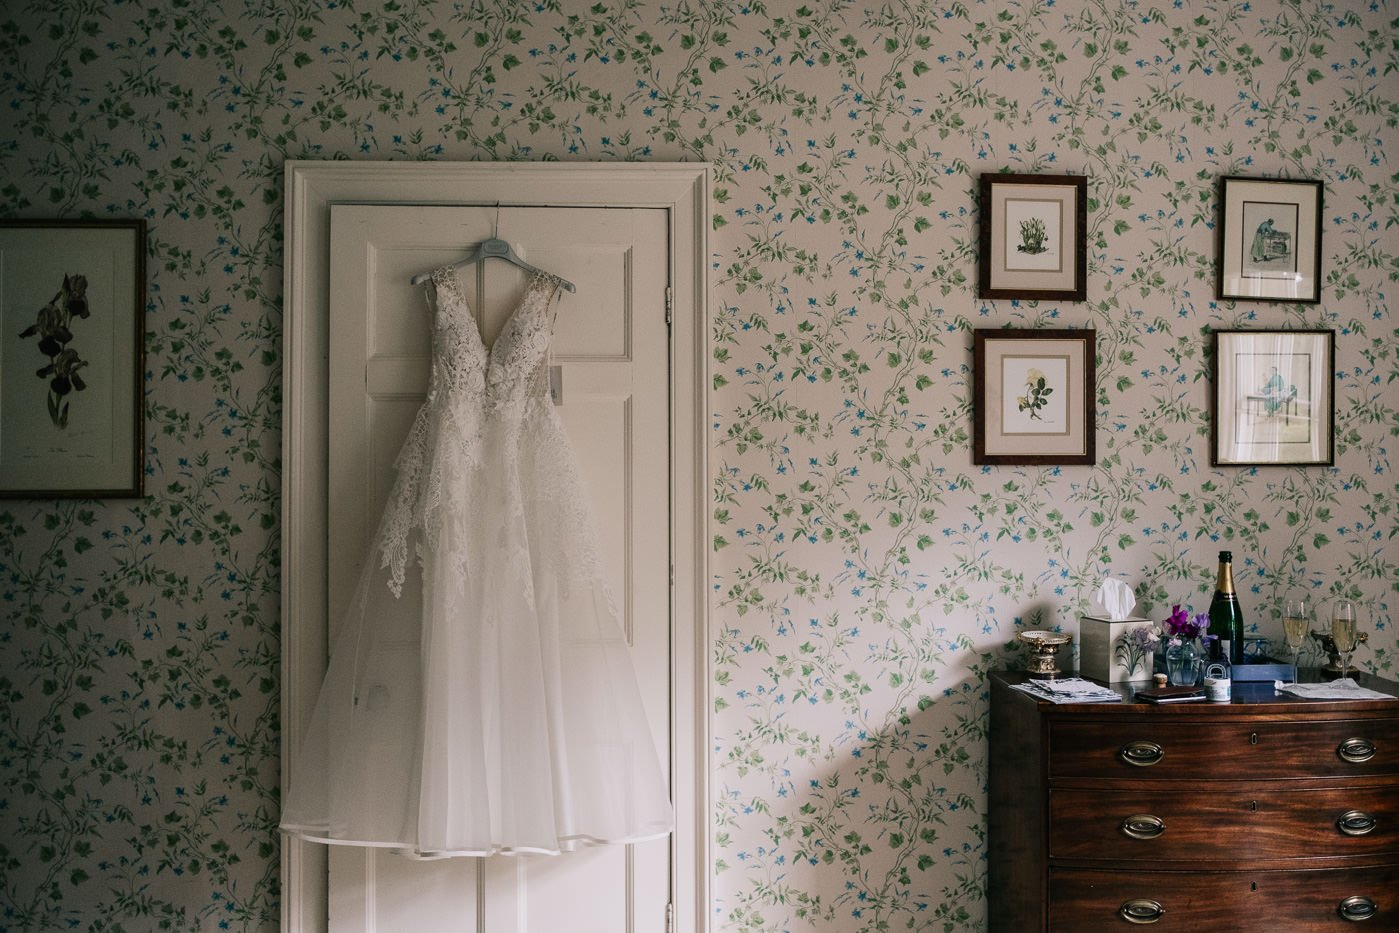 wedding dress hanging up cotswolds wedding photographer